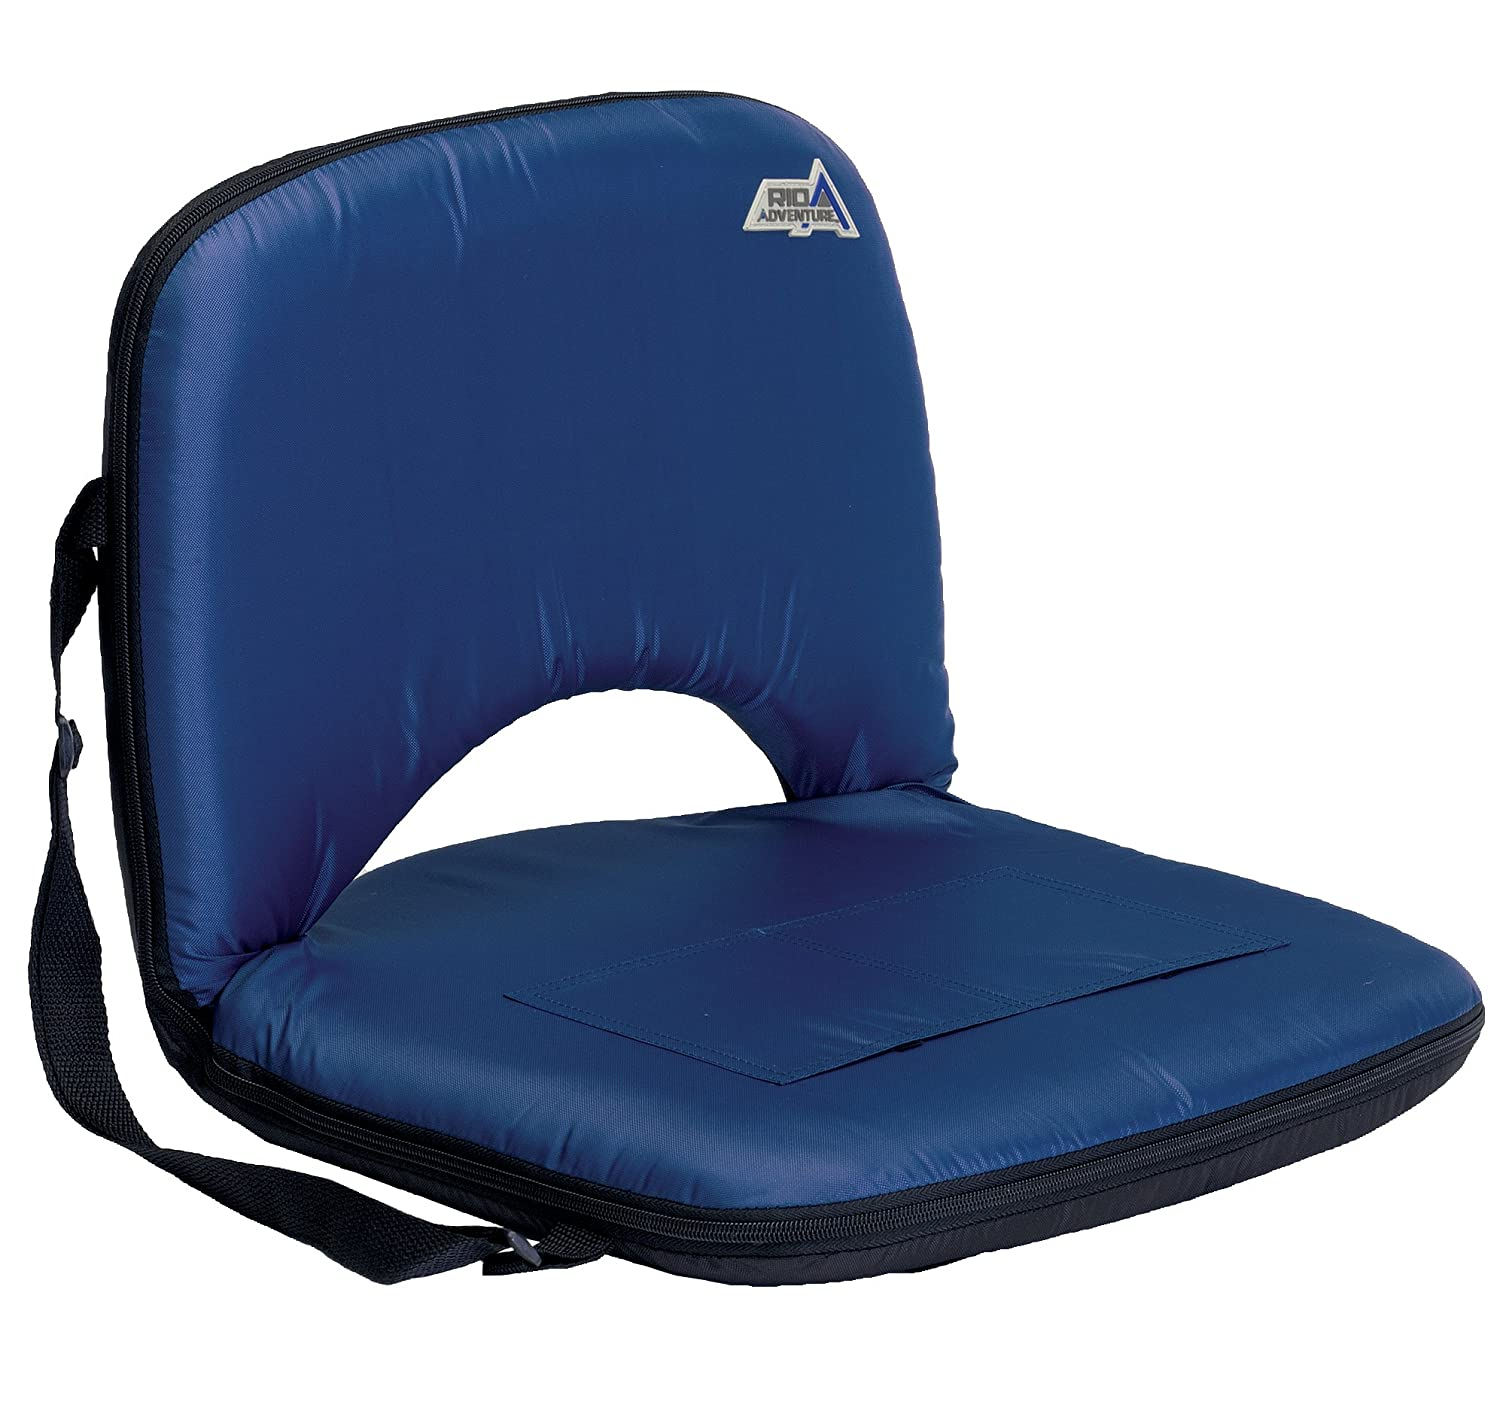 Amazon Rio Adventure My Pod Seat Cool Blue Sports & Outdoors